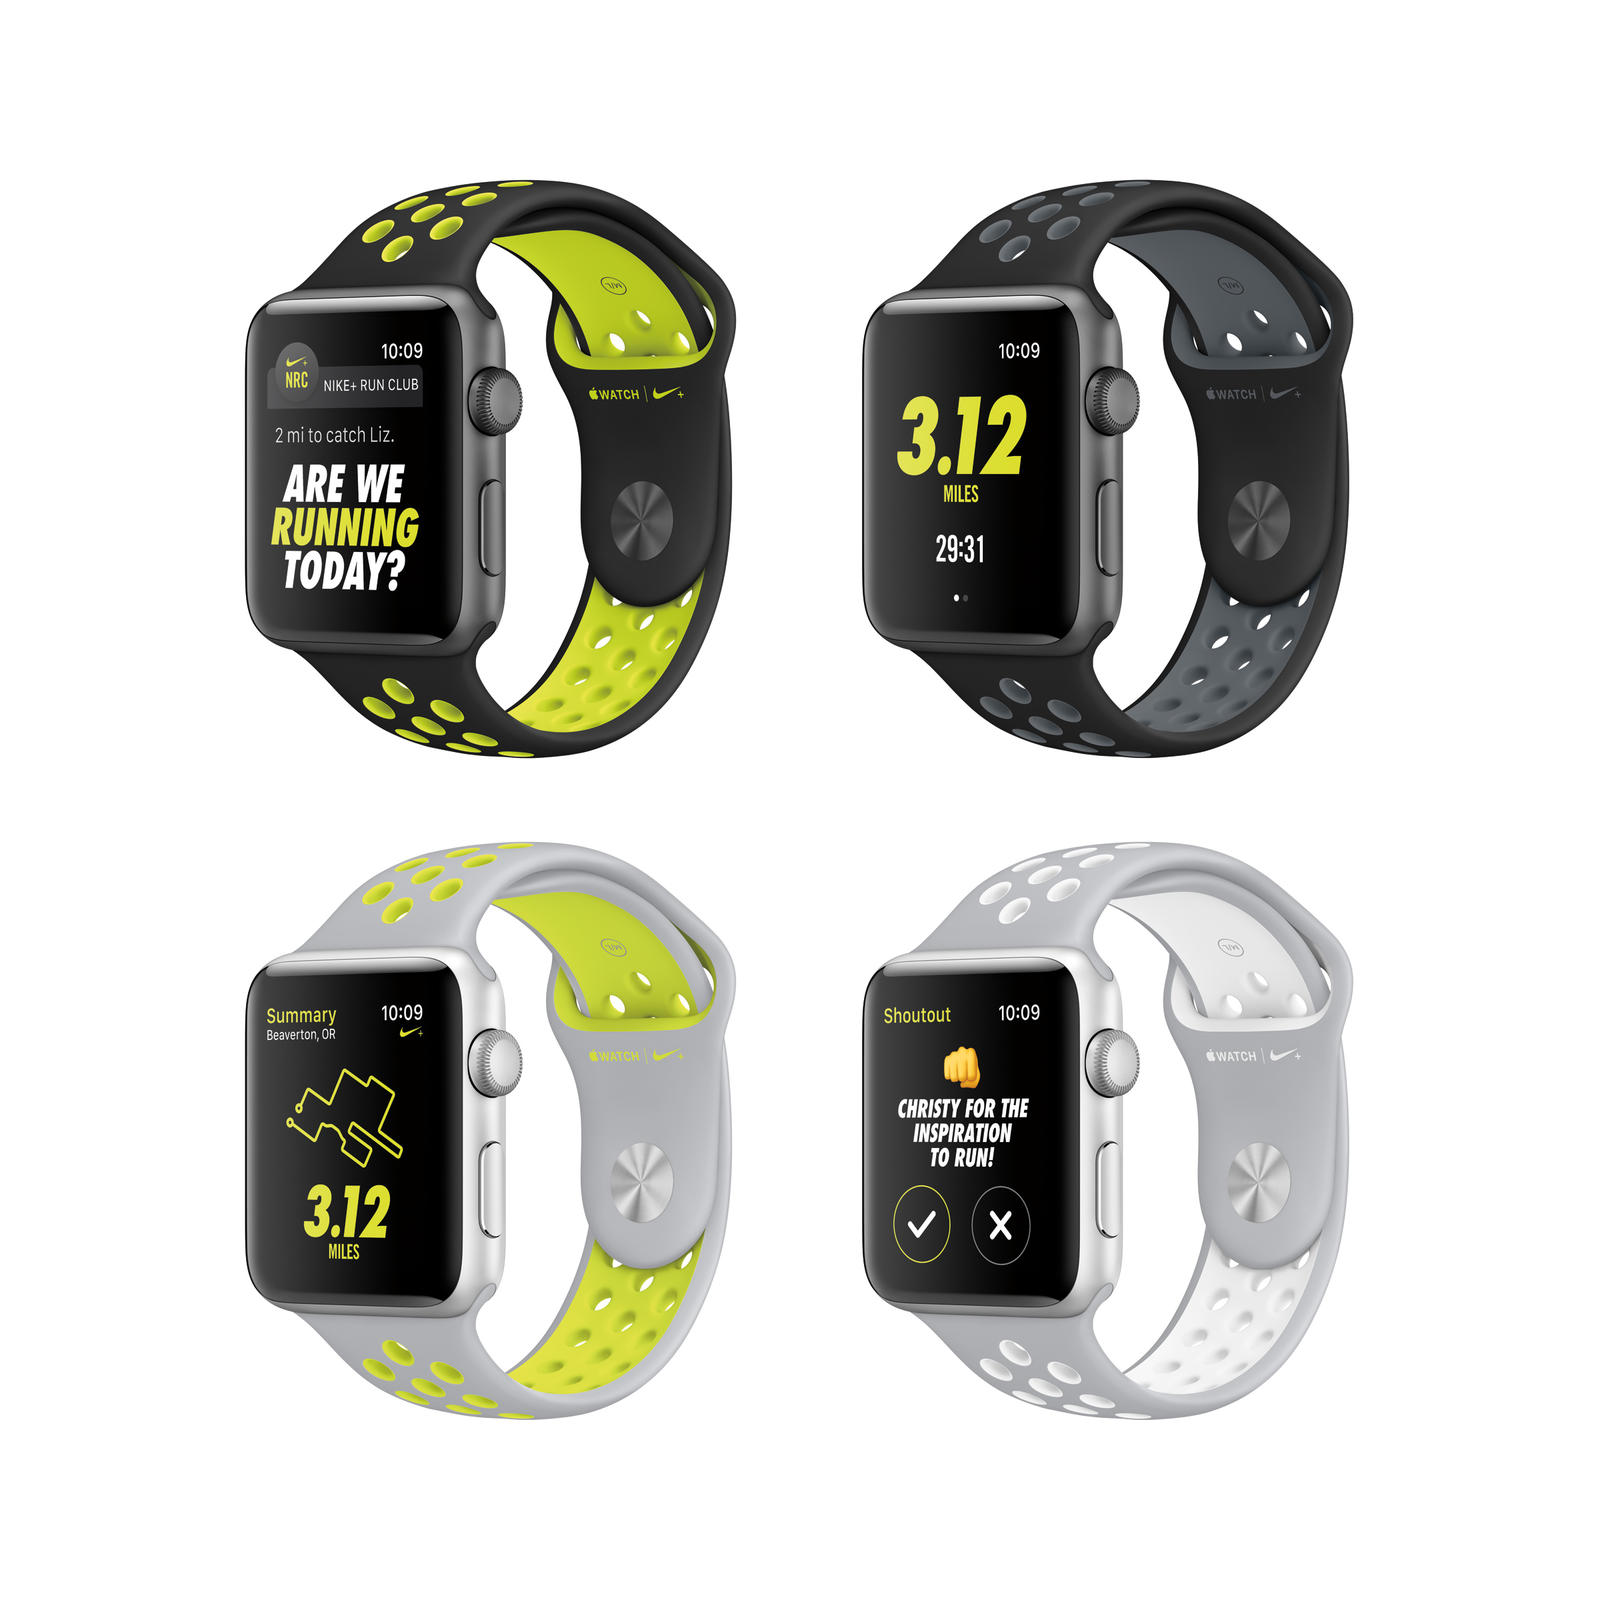 nike-plus-apple-watch-2016-data_native_1600-0